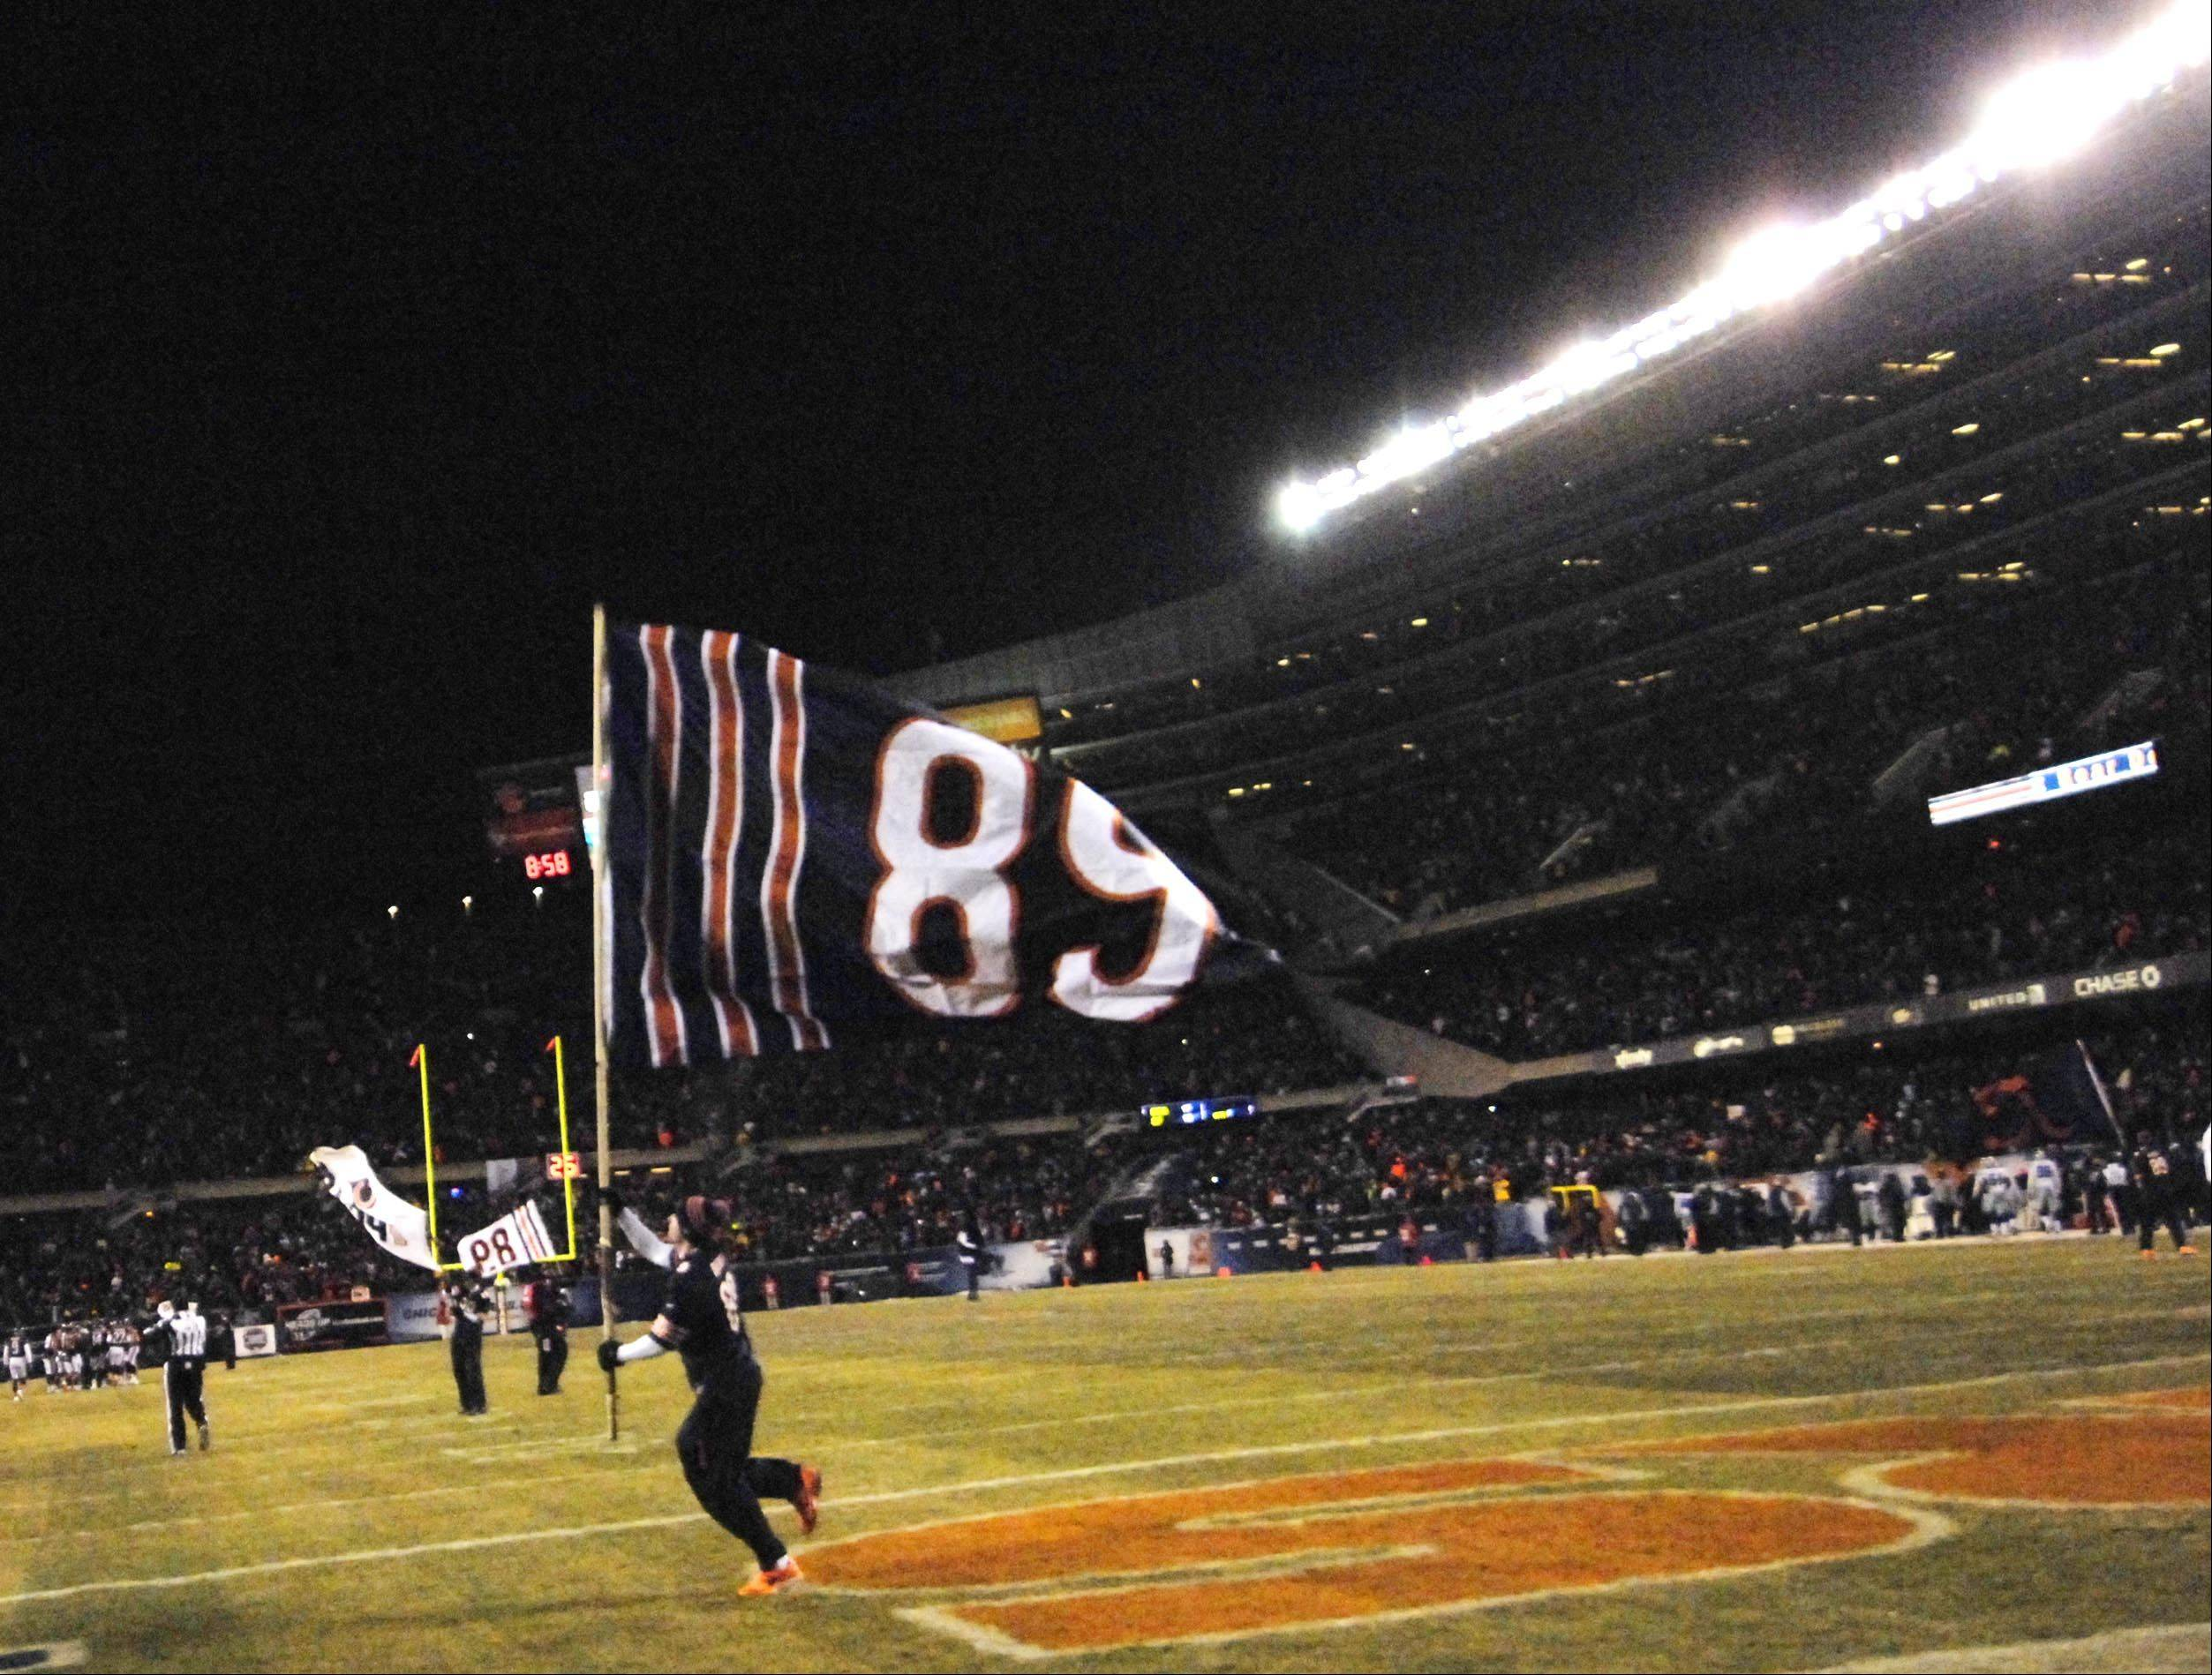 Mike Ditka's jersey number is waved on a flag Monday at Soldier Field in Chicago.